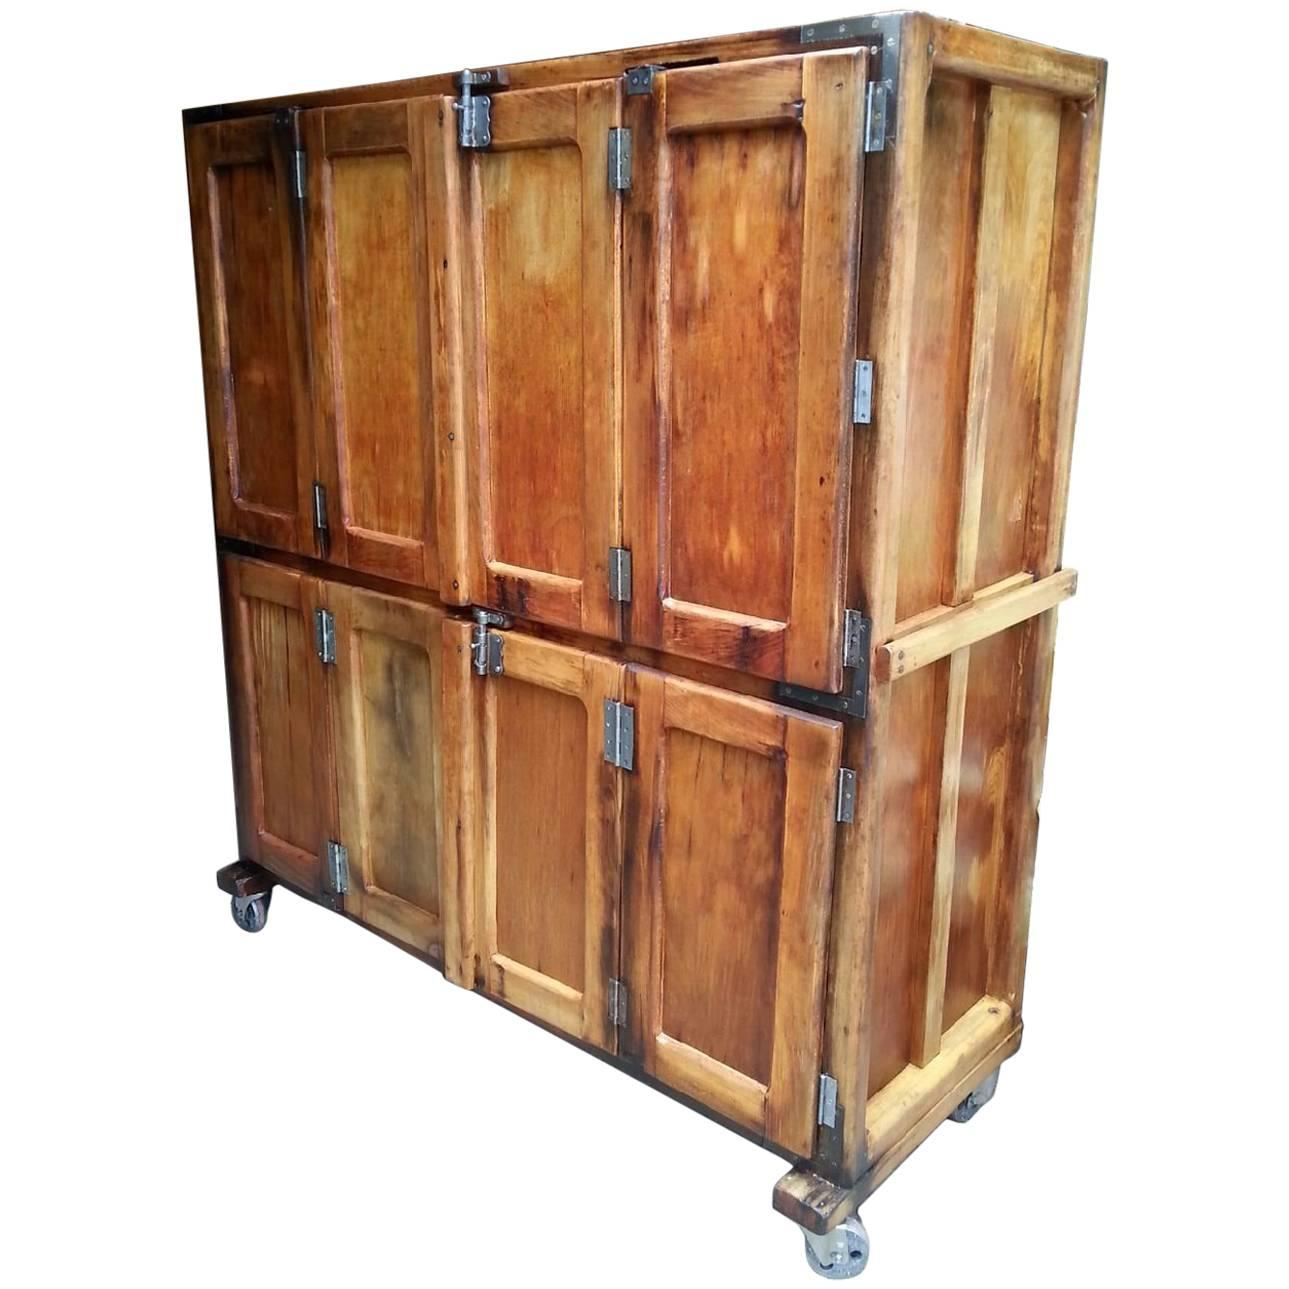 Antique French Bakery Cabinet or Locker Unit For Sale at 1stdibs